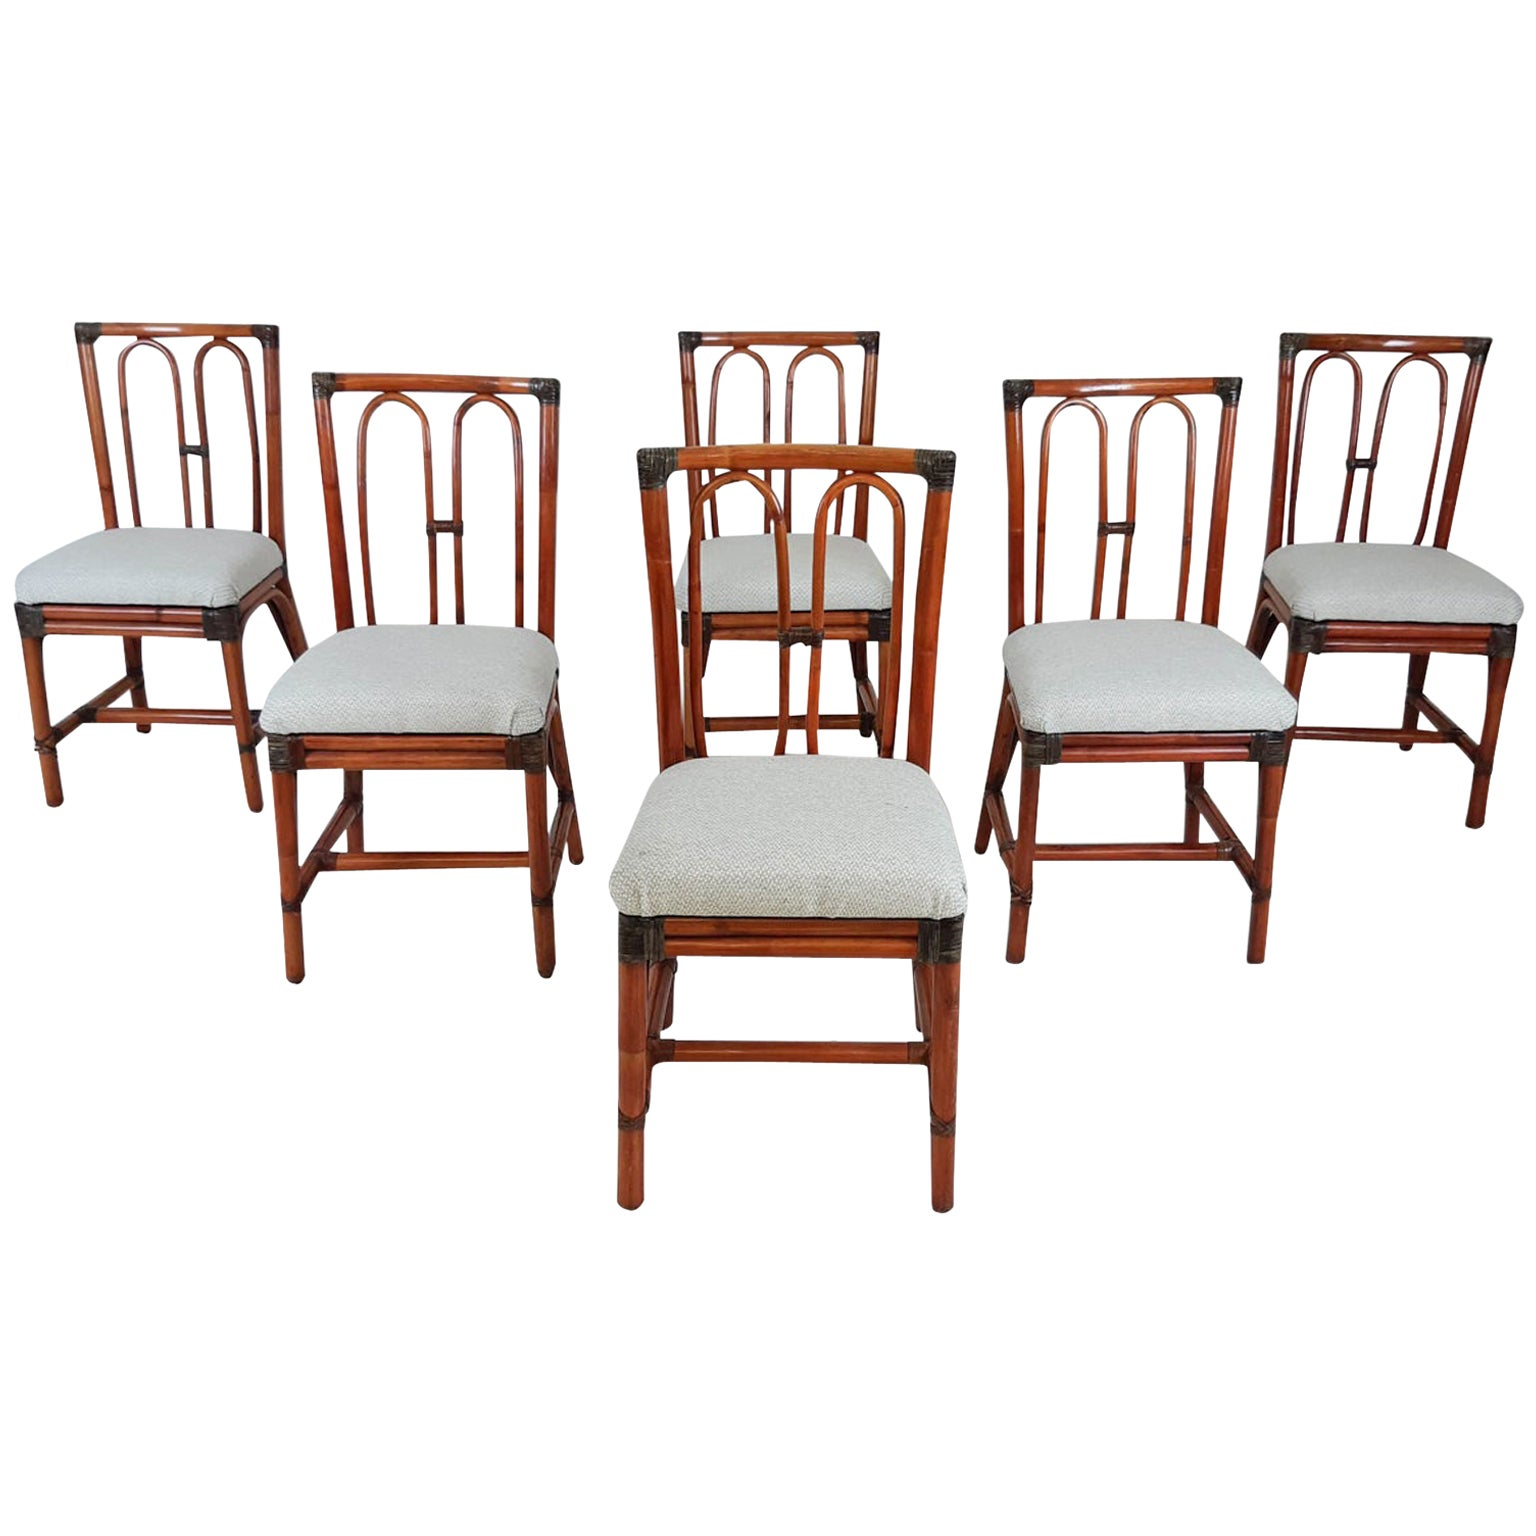 Set of 6 McGuire Attributed Vintage Bamboo Dining Chairs